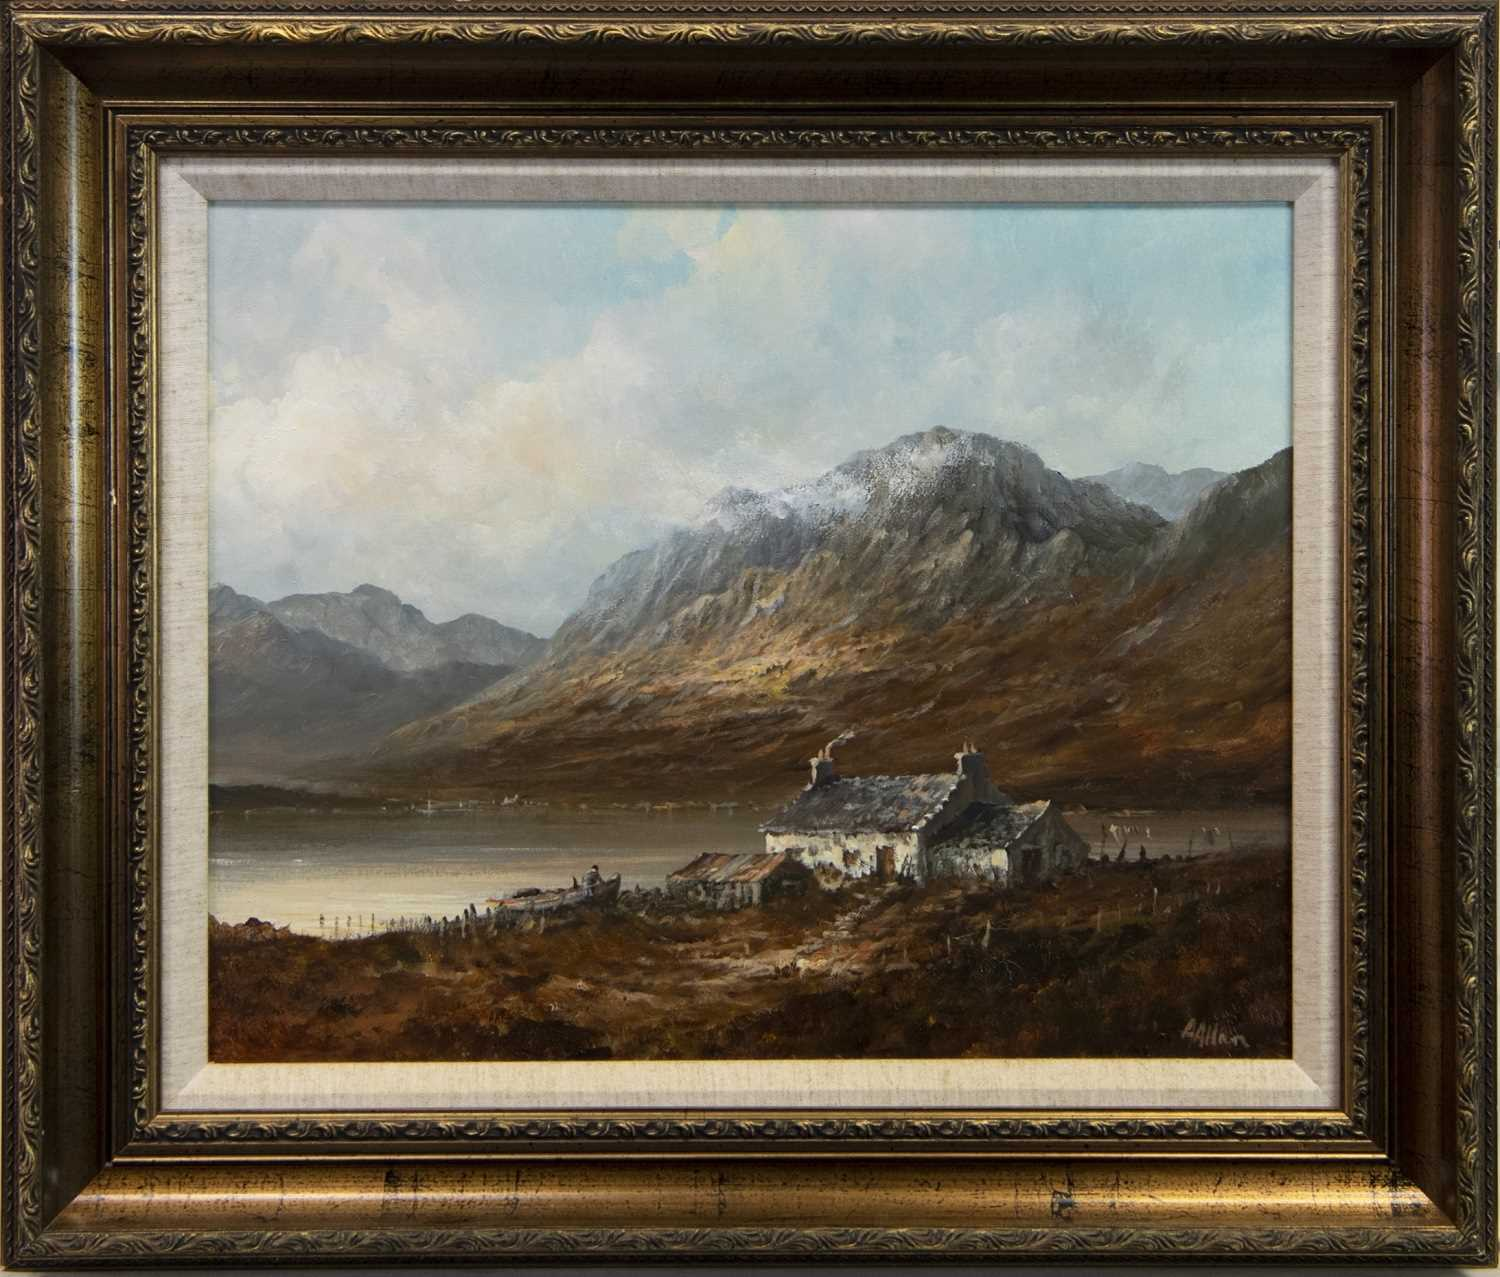 Lot 79 - COTTAGE IN A HIGHLAND LANDSCAPE, AN OIL BY ALFRED ALLAN